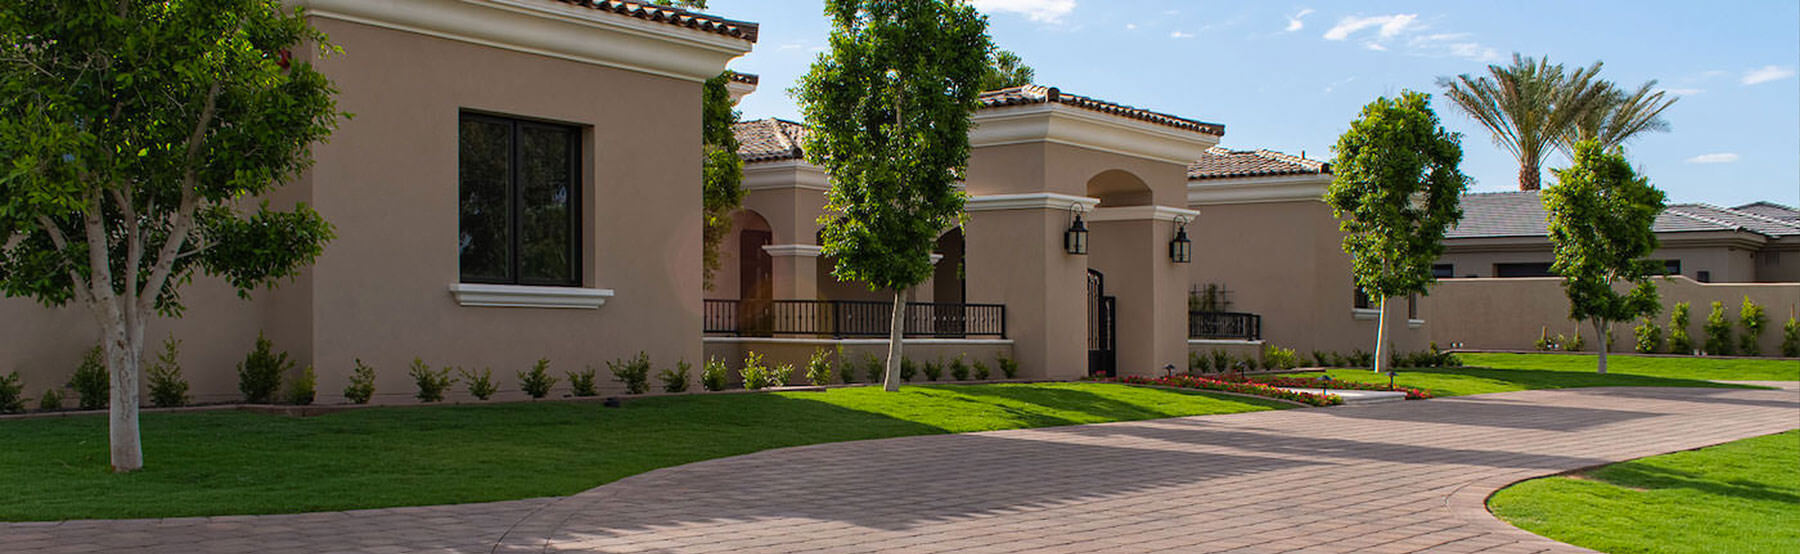 Paradise Valley Landscaping and Lighting